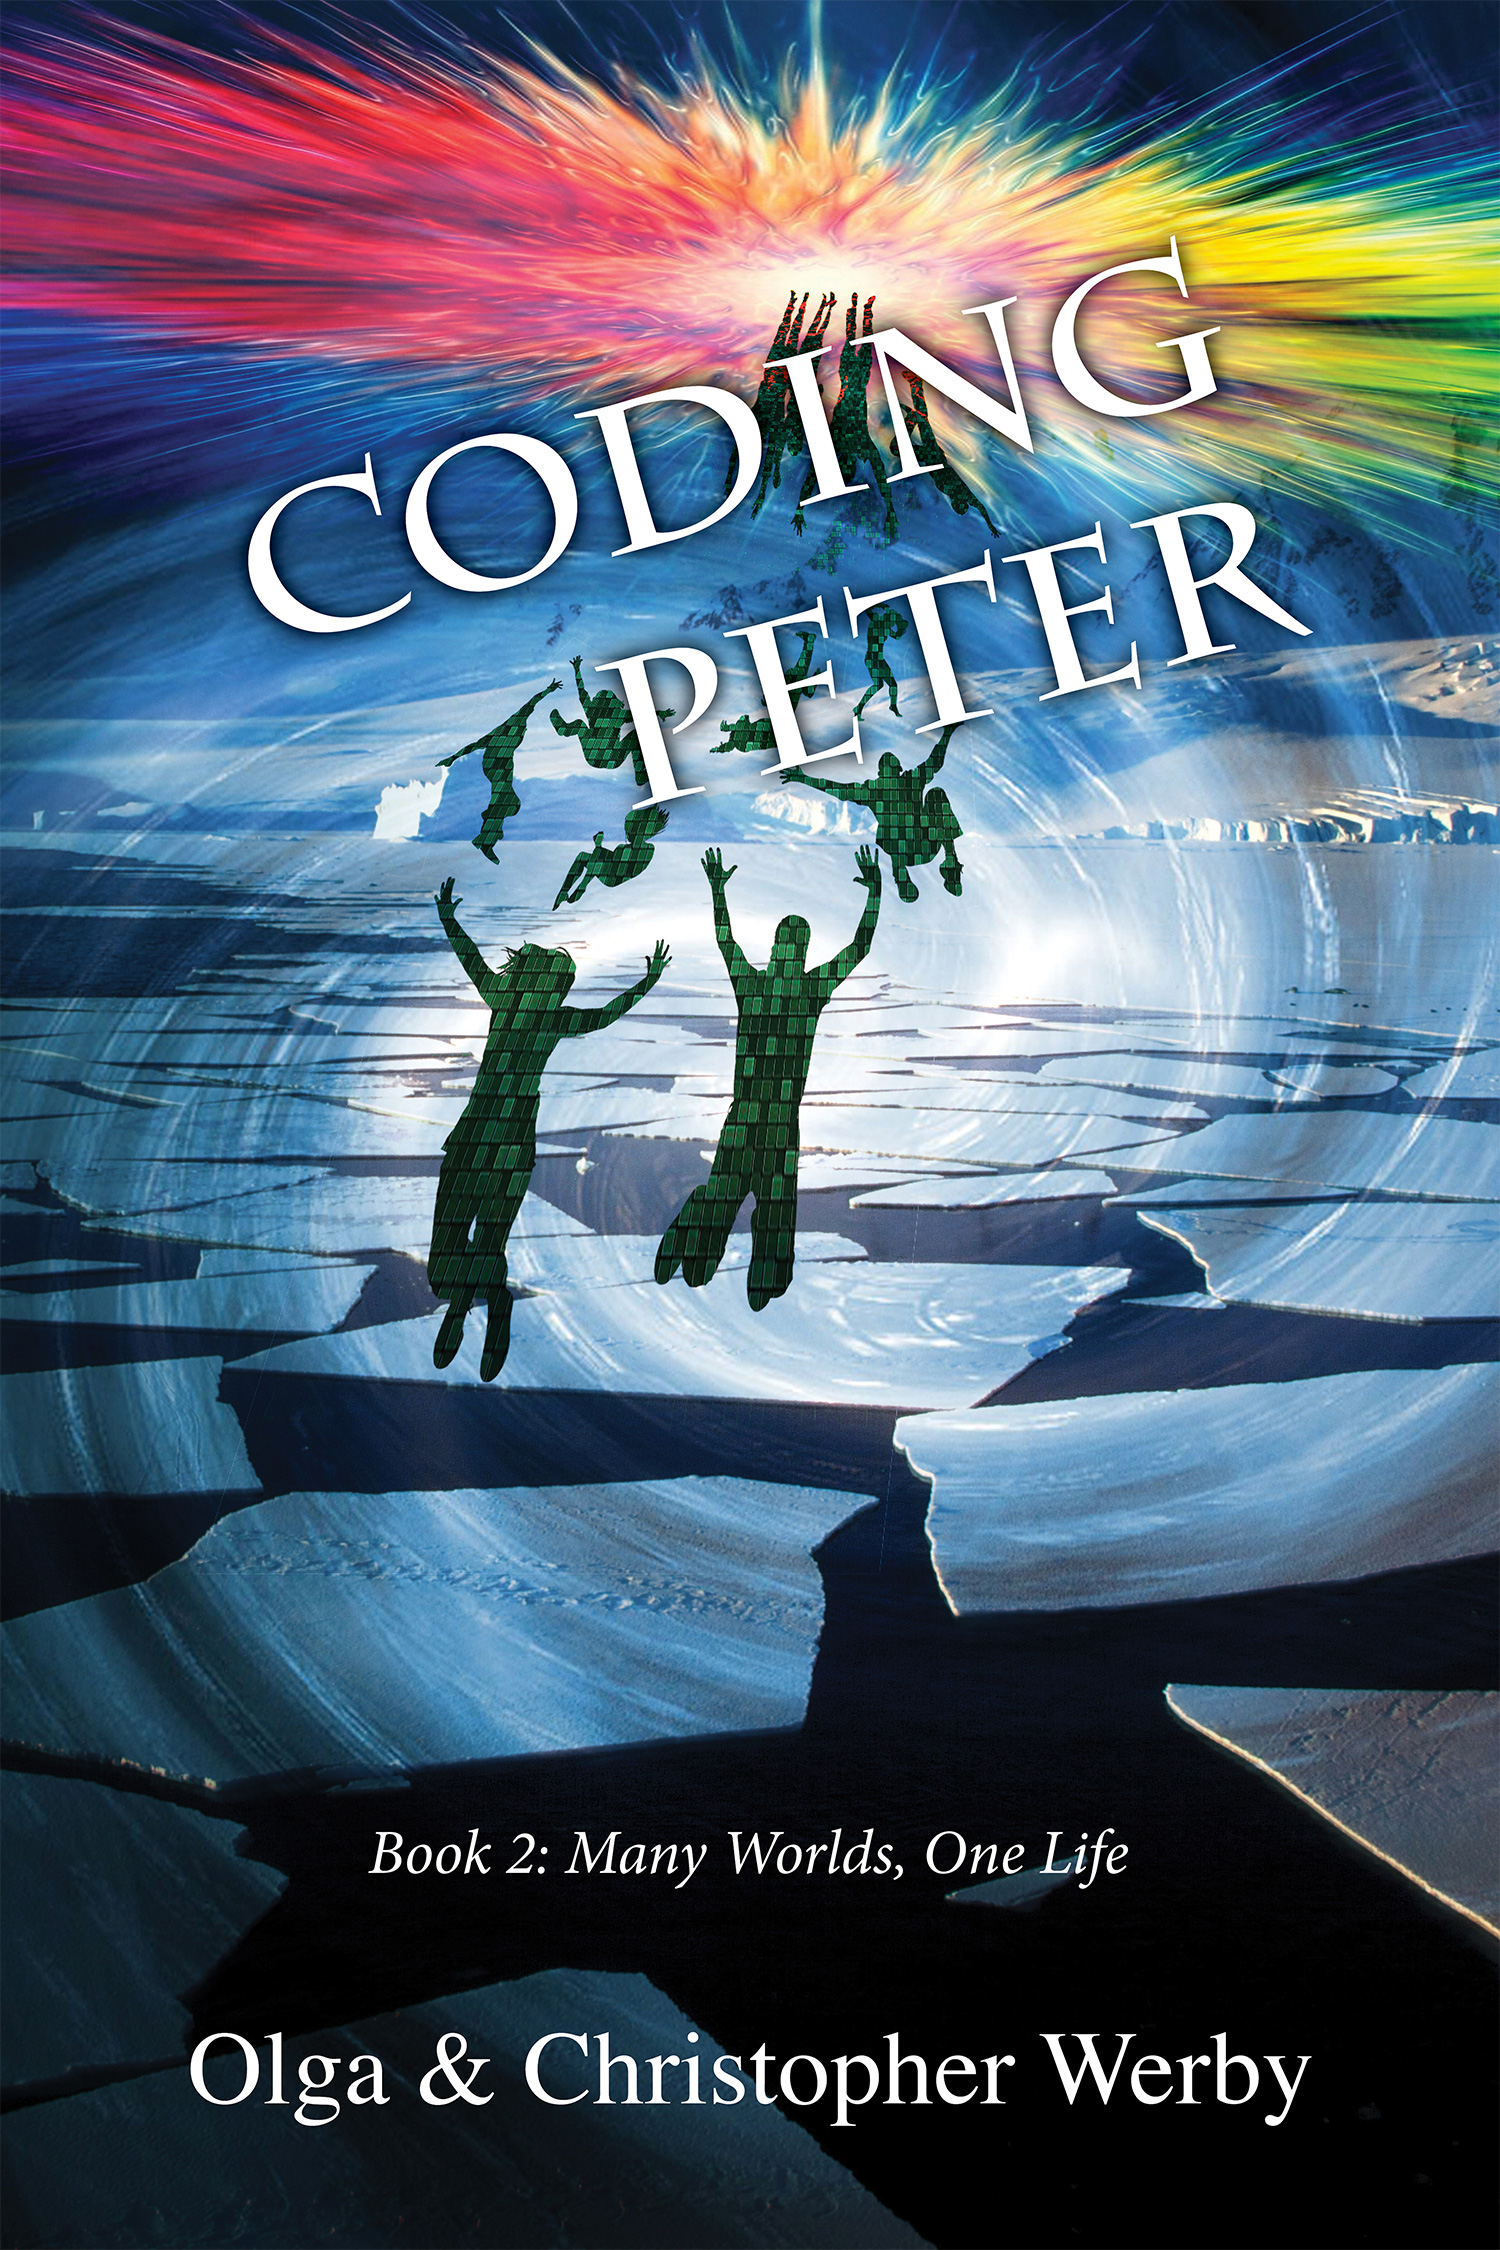 Coding Peter